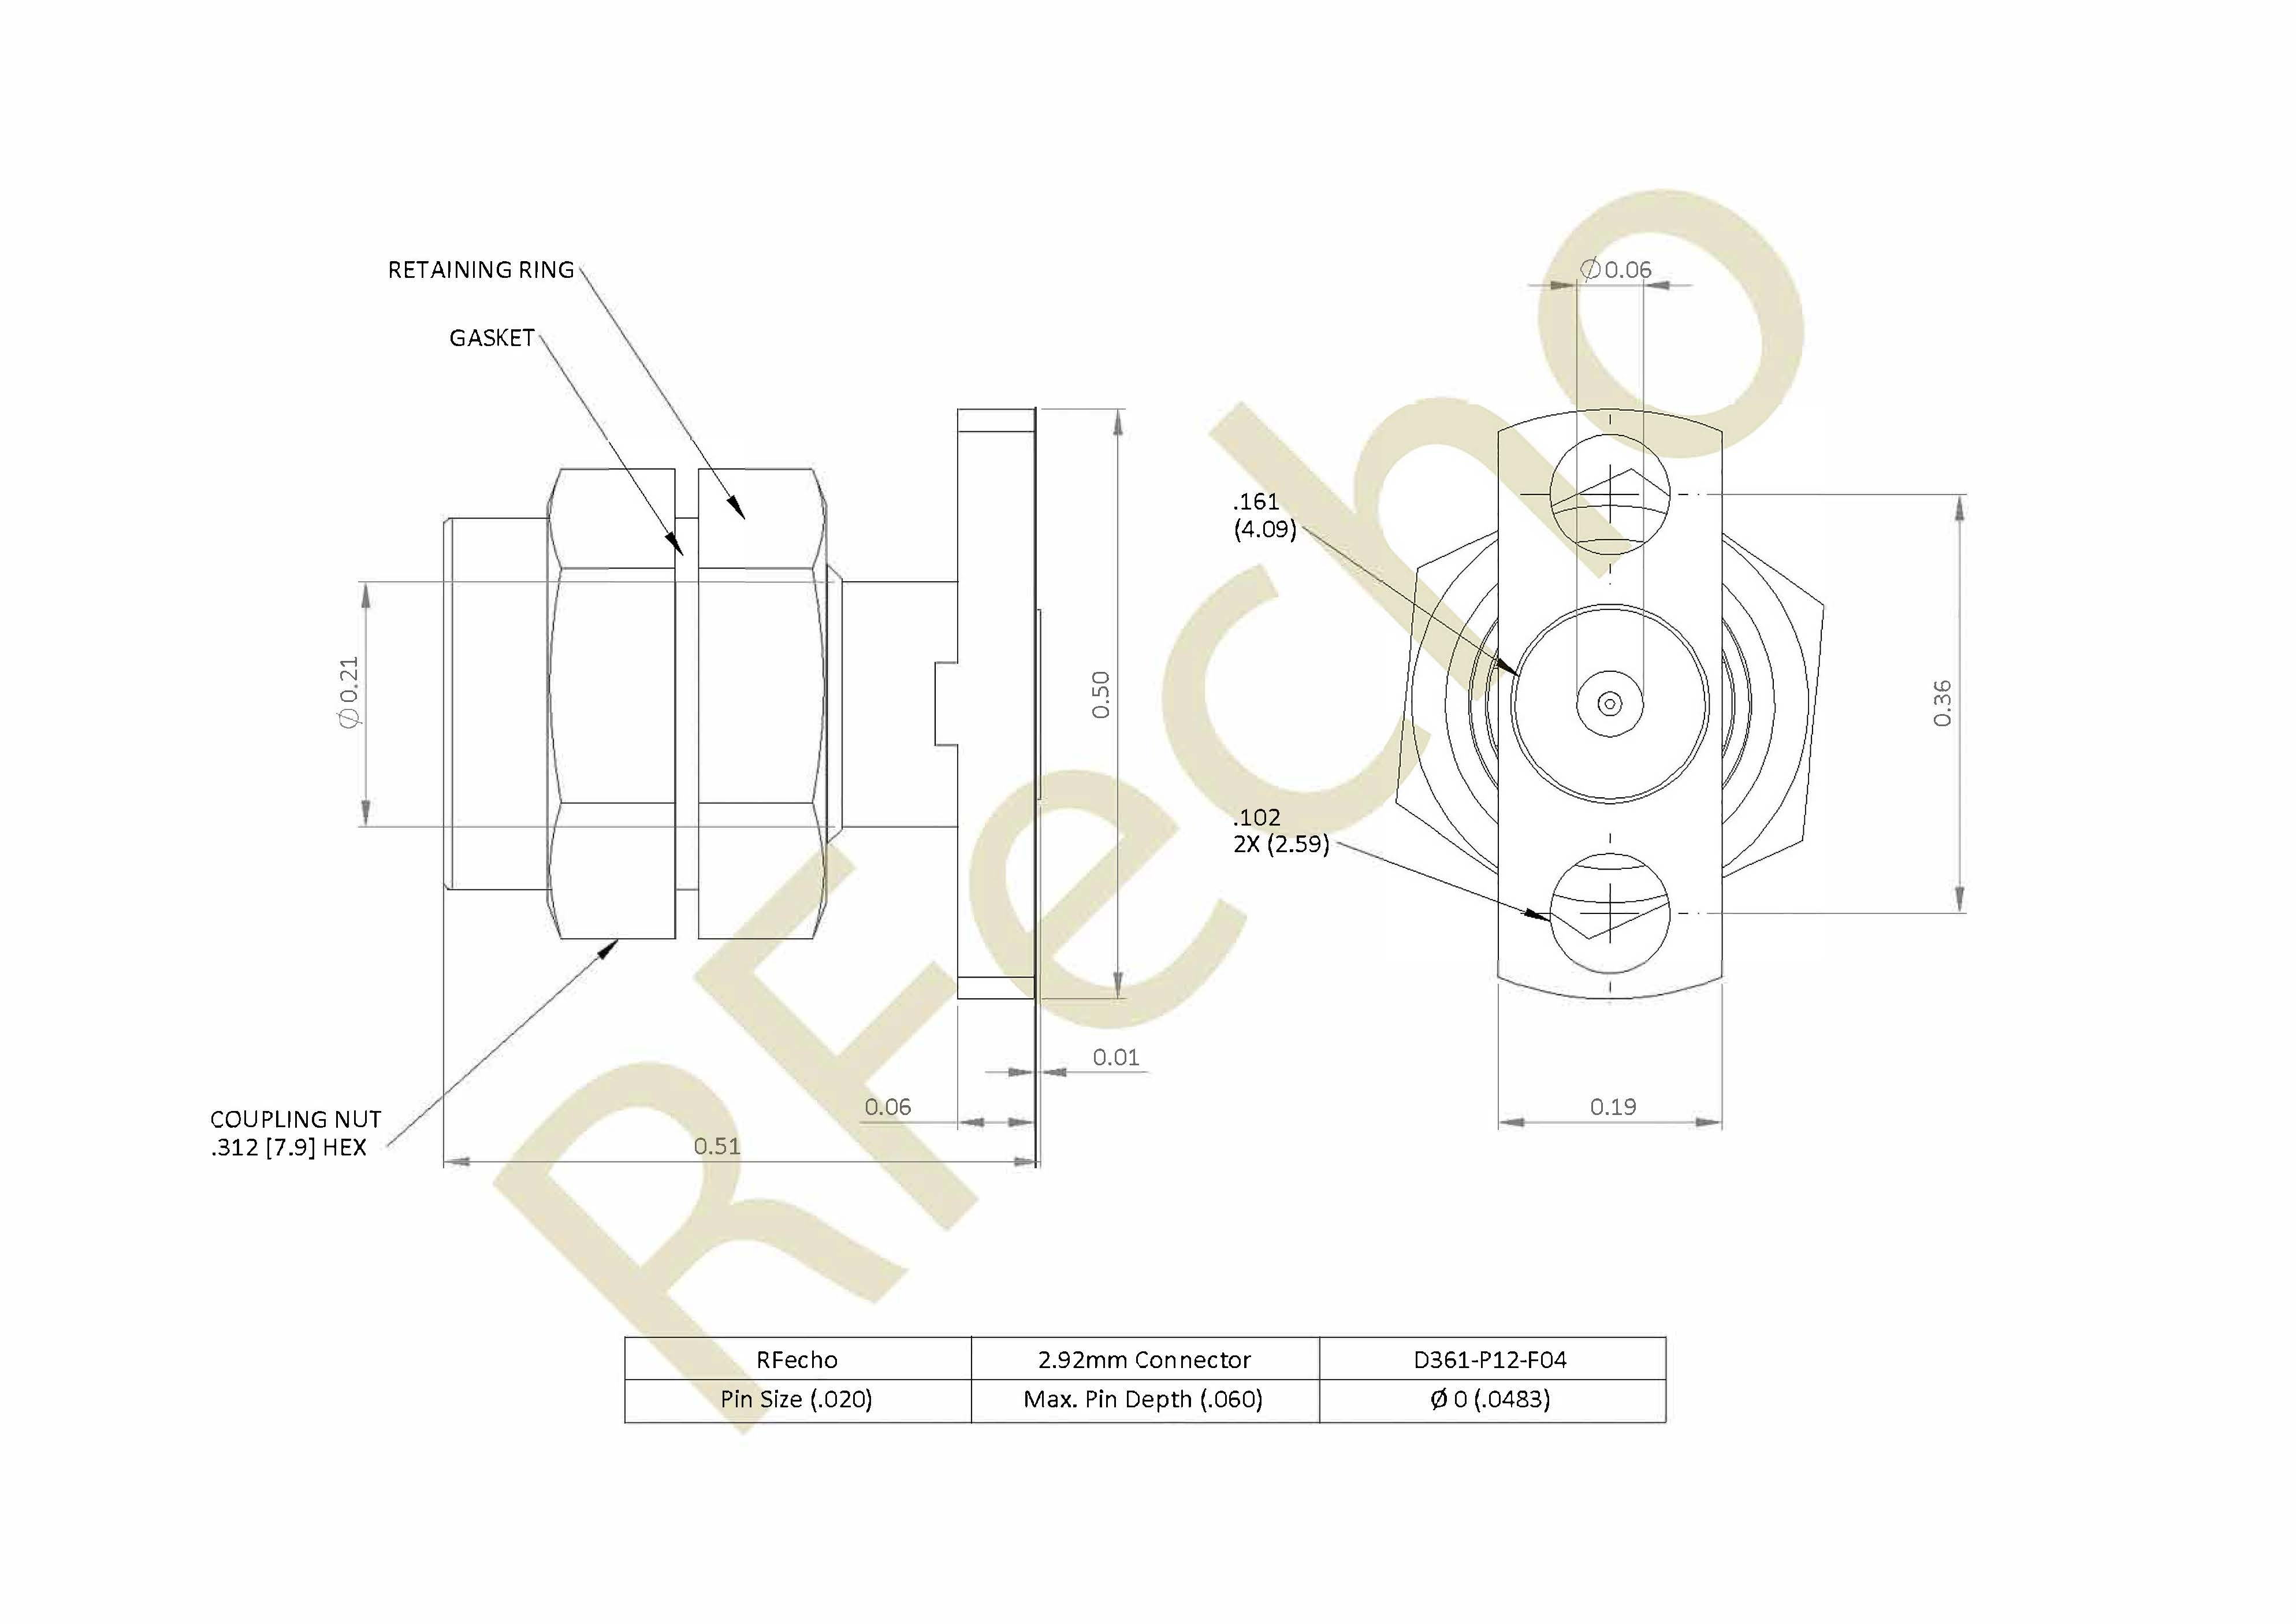 D361 P12 F04 outline 2.92mm 40 GHz, 0.012″ Accept Pin Diameter, 2 Hole .500″ Long Mounting Flange Male Connector